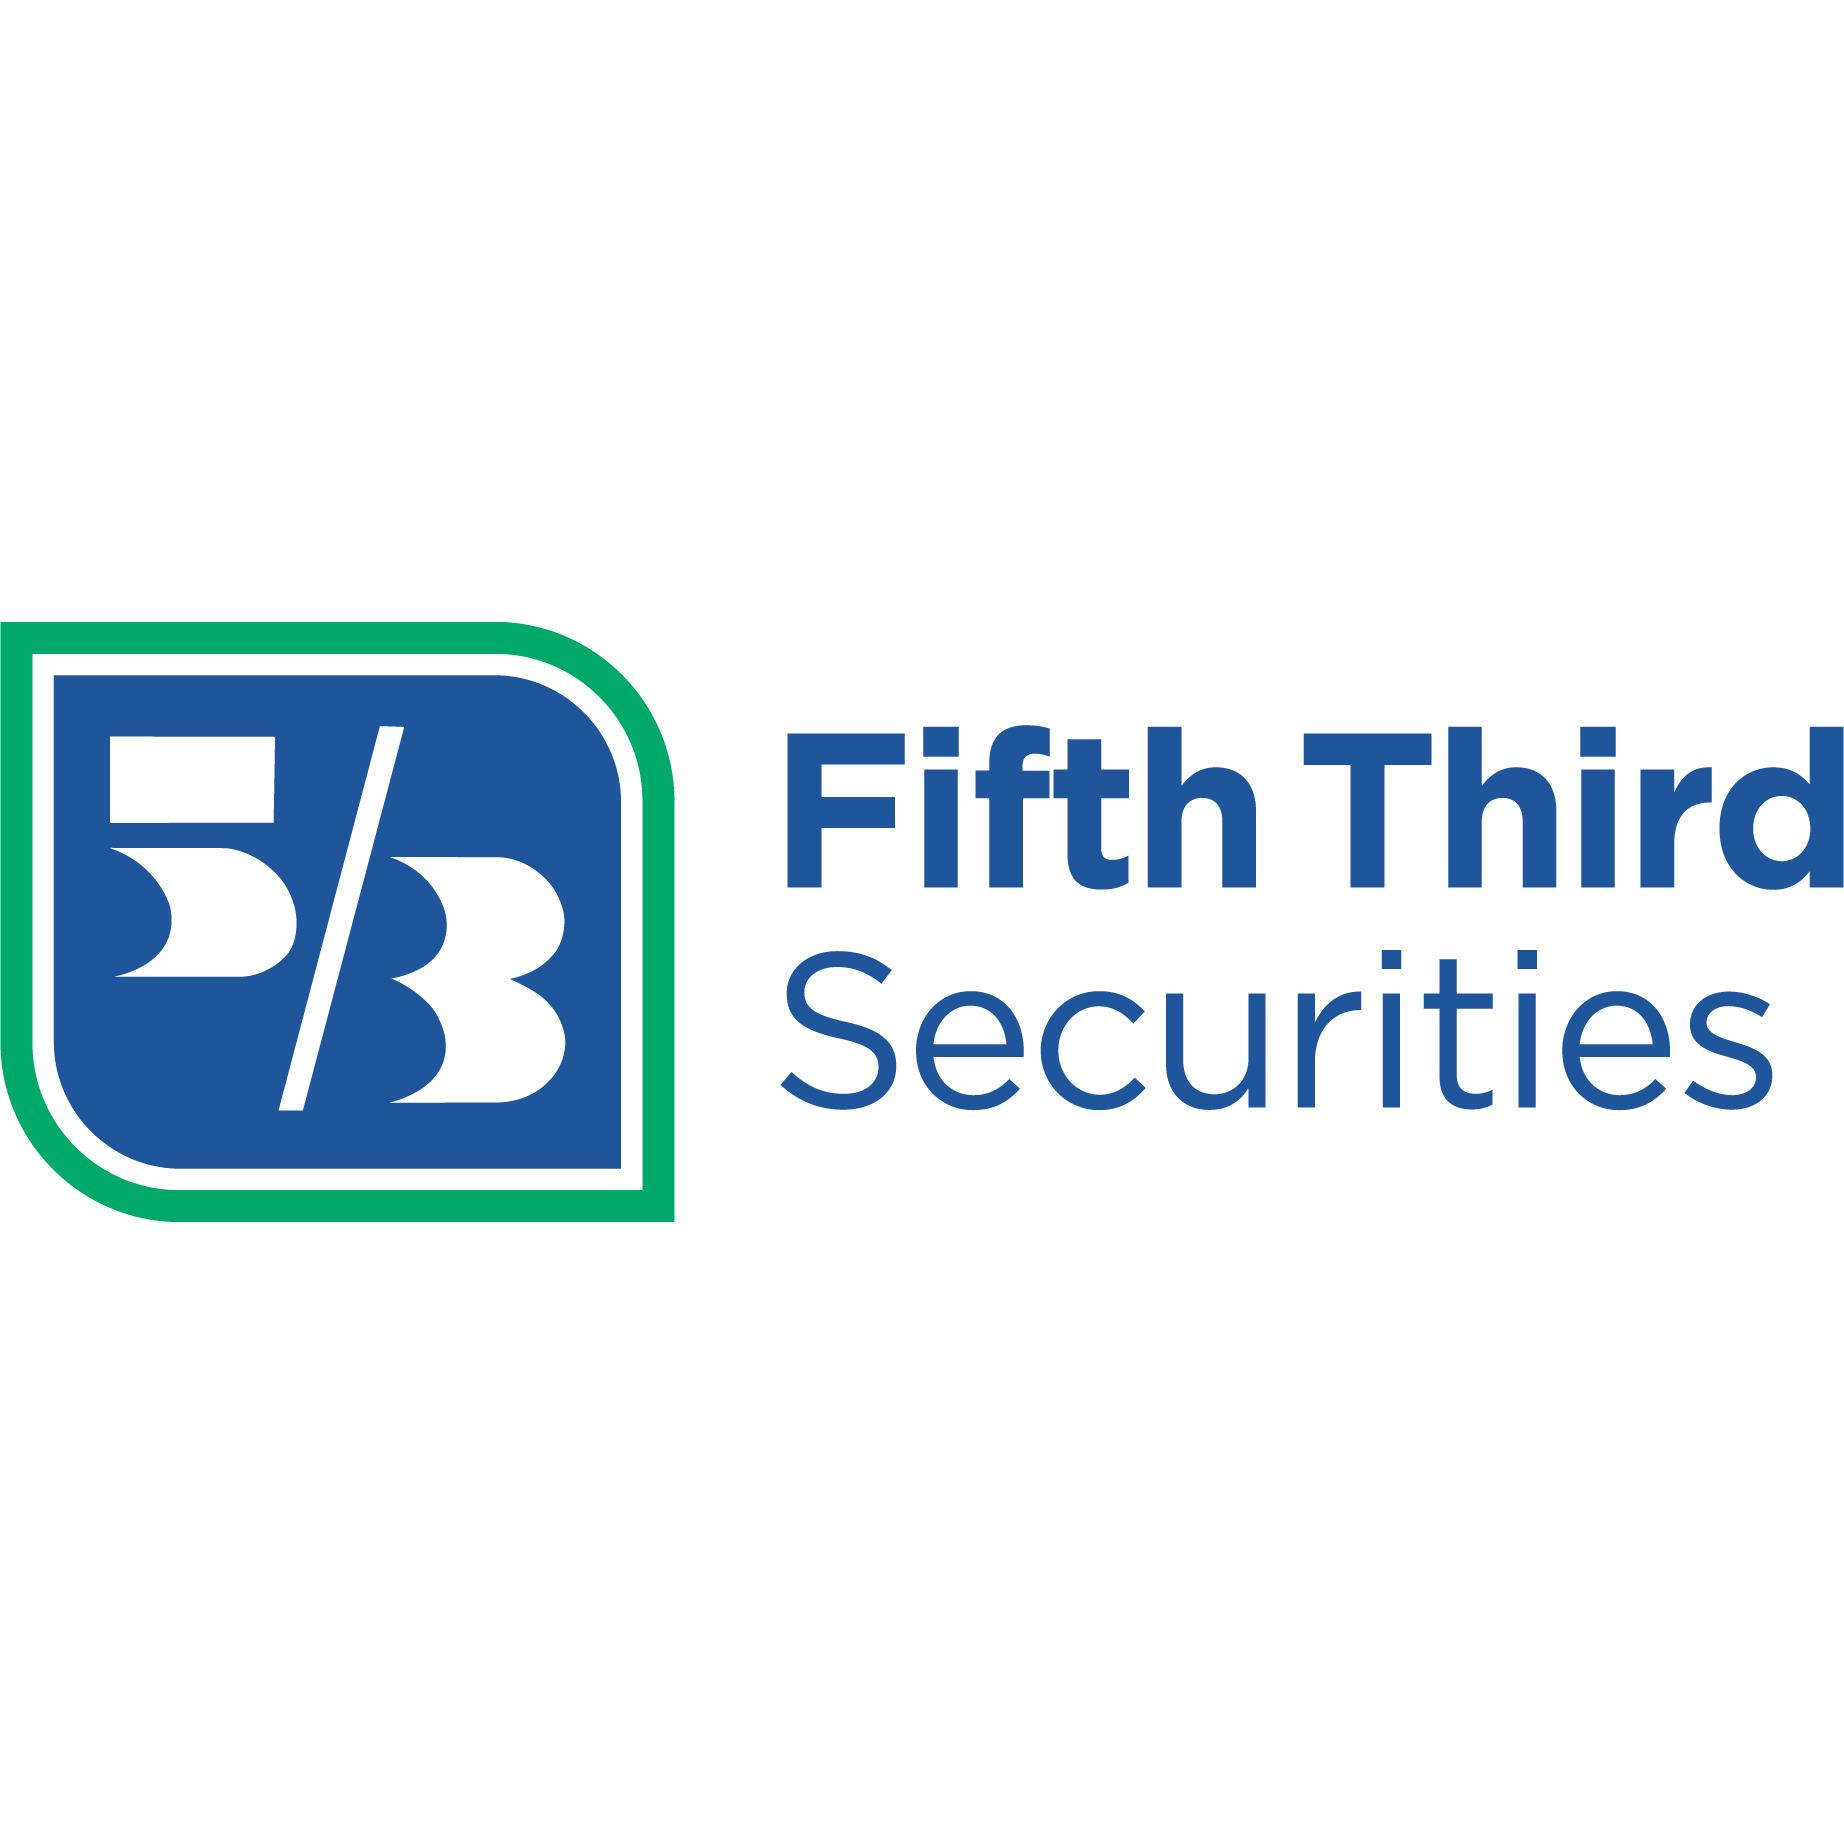 Fifth Third Securities - Kelly Malatesta